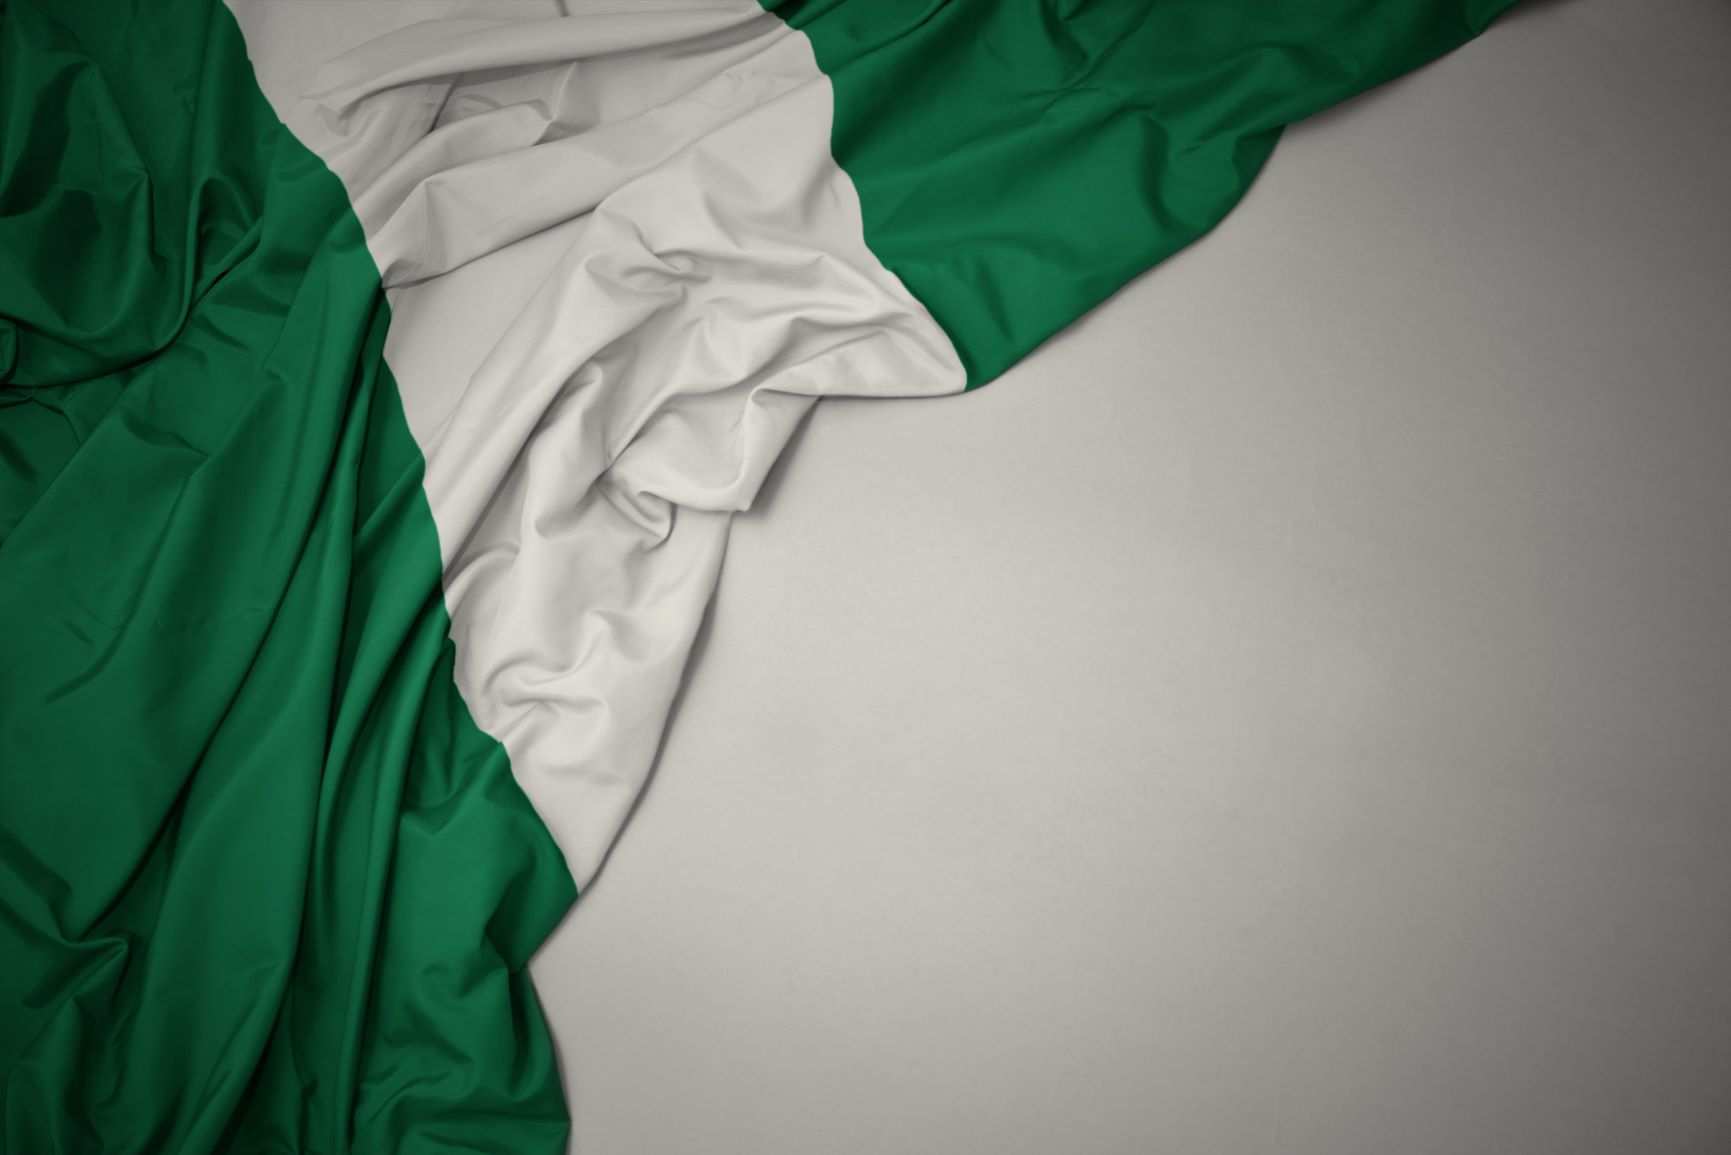 Central Bank of Nigeria makes dovish shift and affirms FX unification